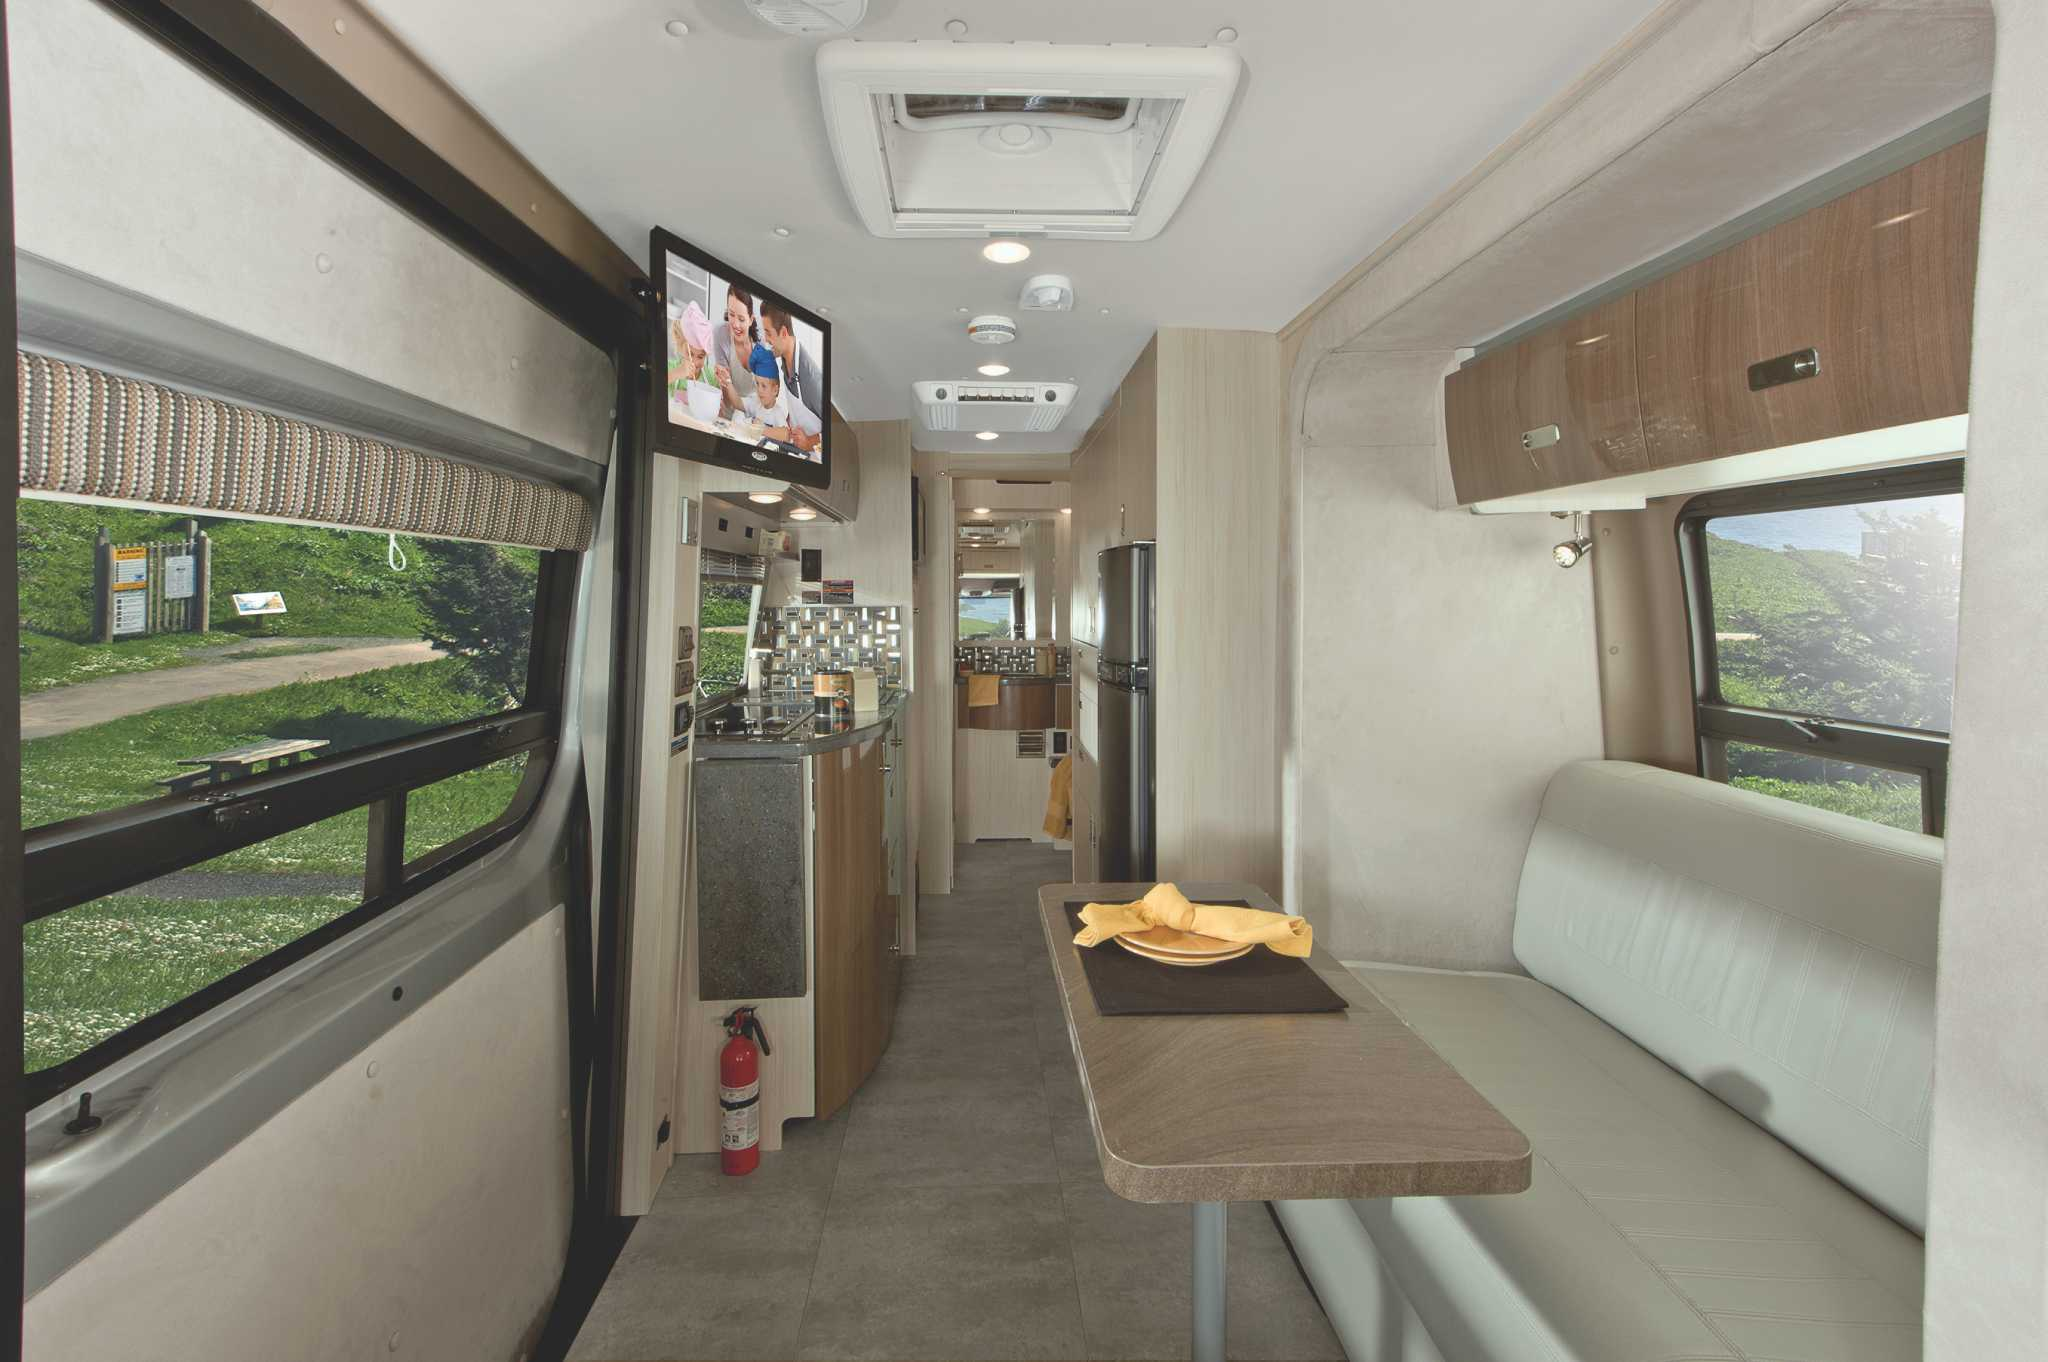 2016 mercedes benz sprinter this van is fit for up fit houston chronicle. Black Bedroom Furniture Sets. Home Design Ideas